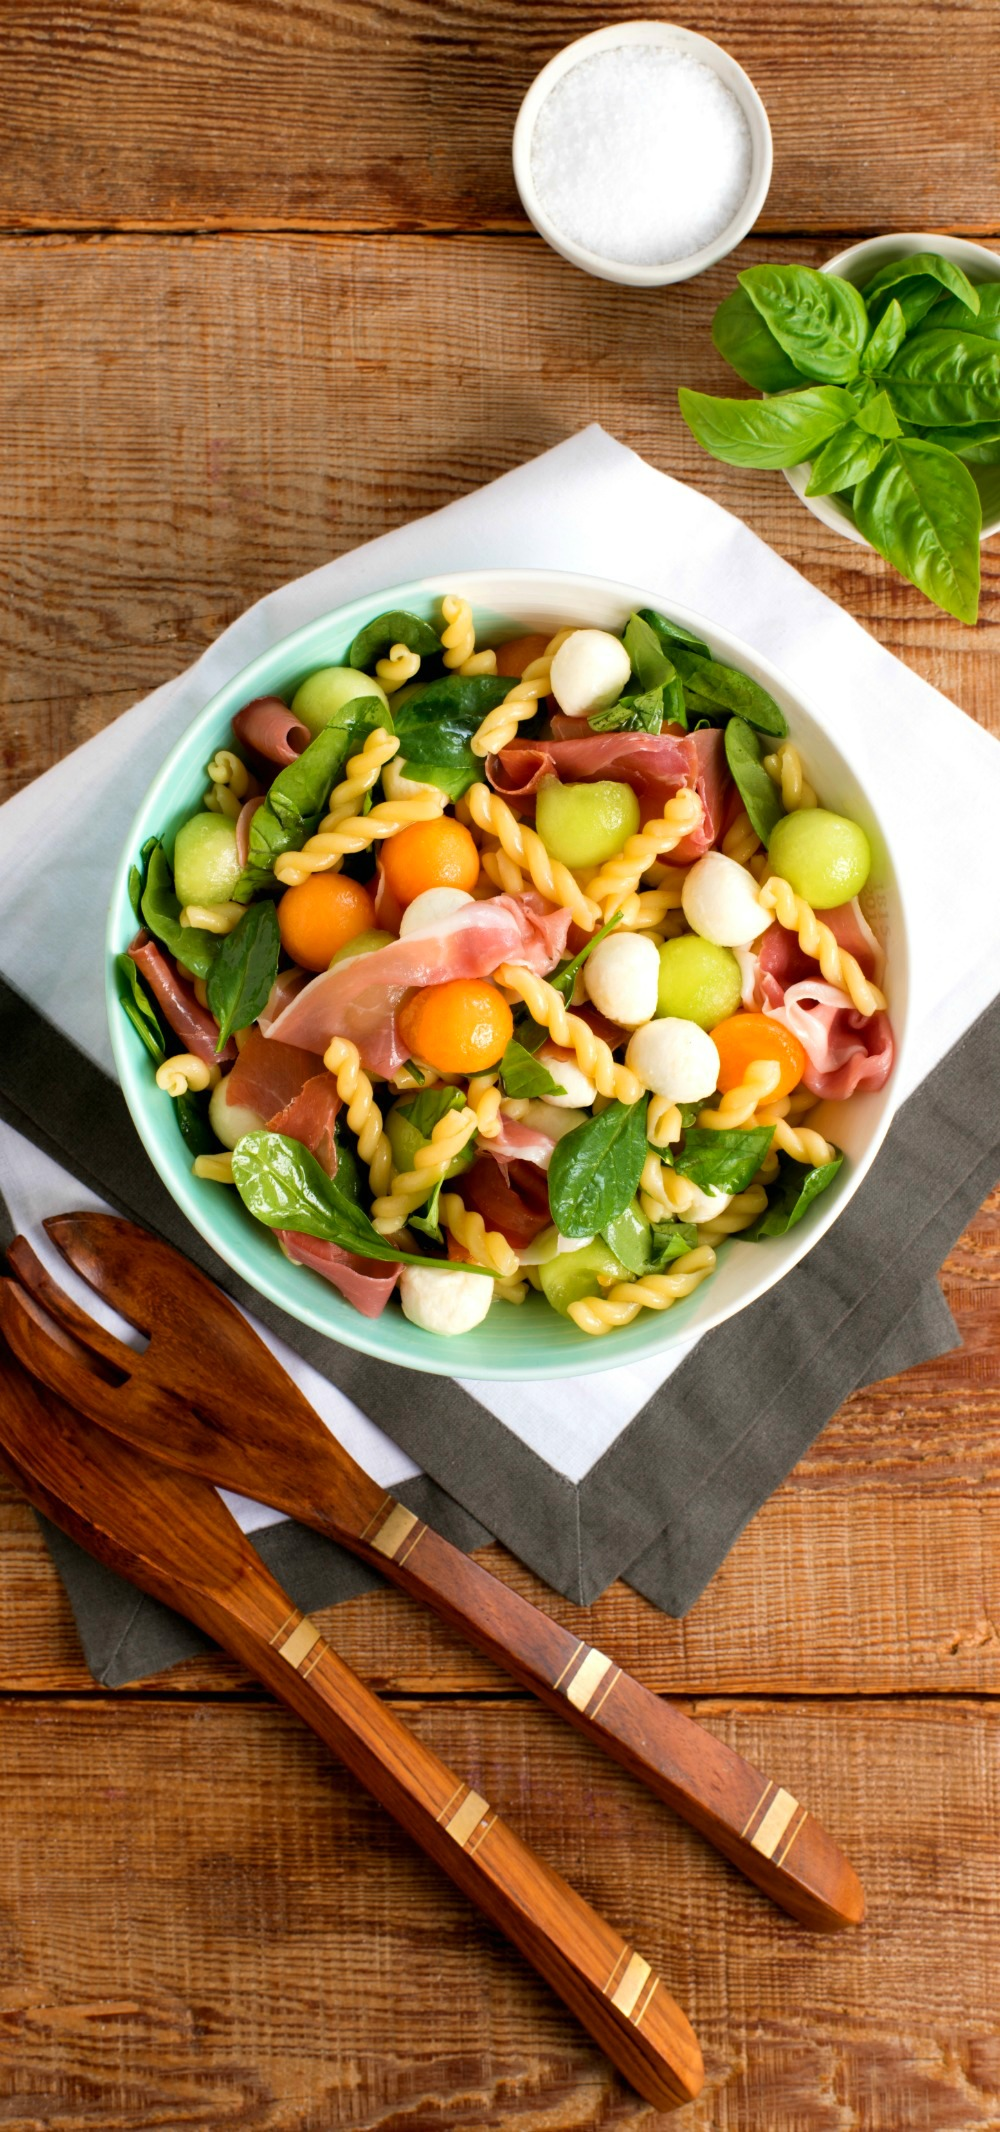 Melon Prosciutto Pasta Salad recipe